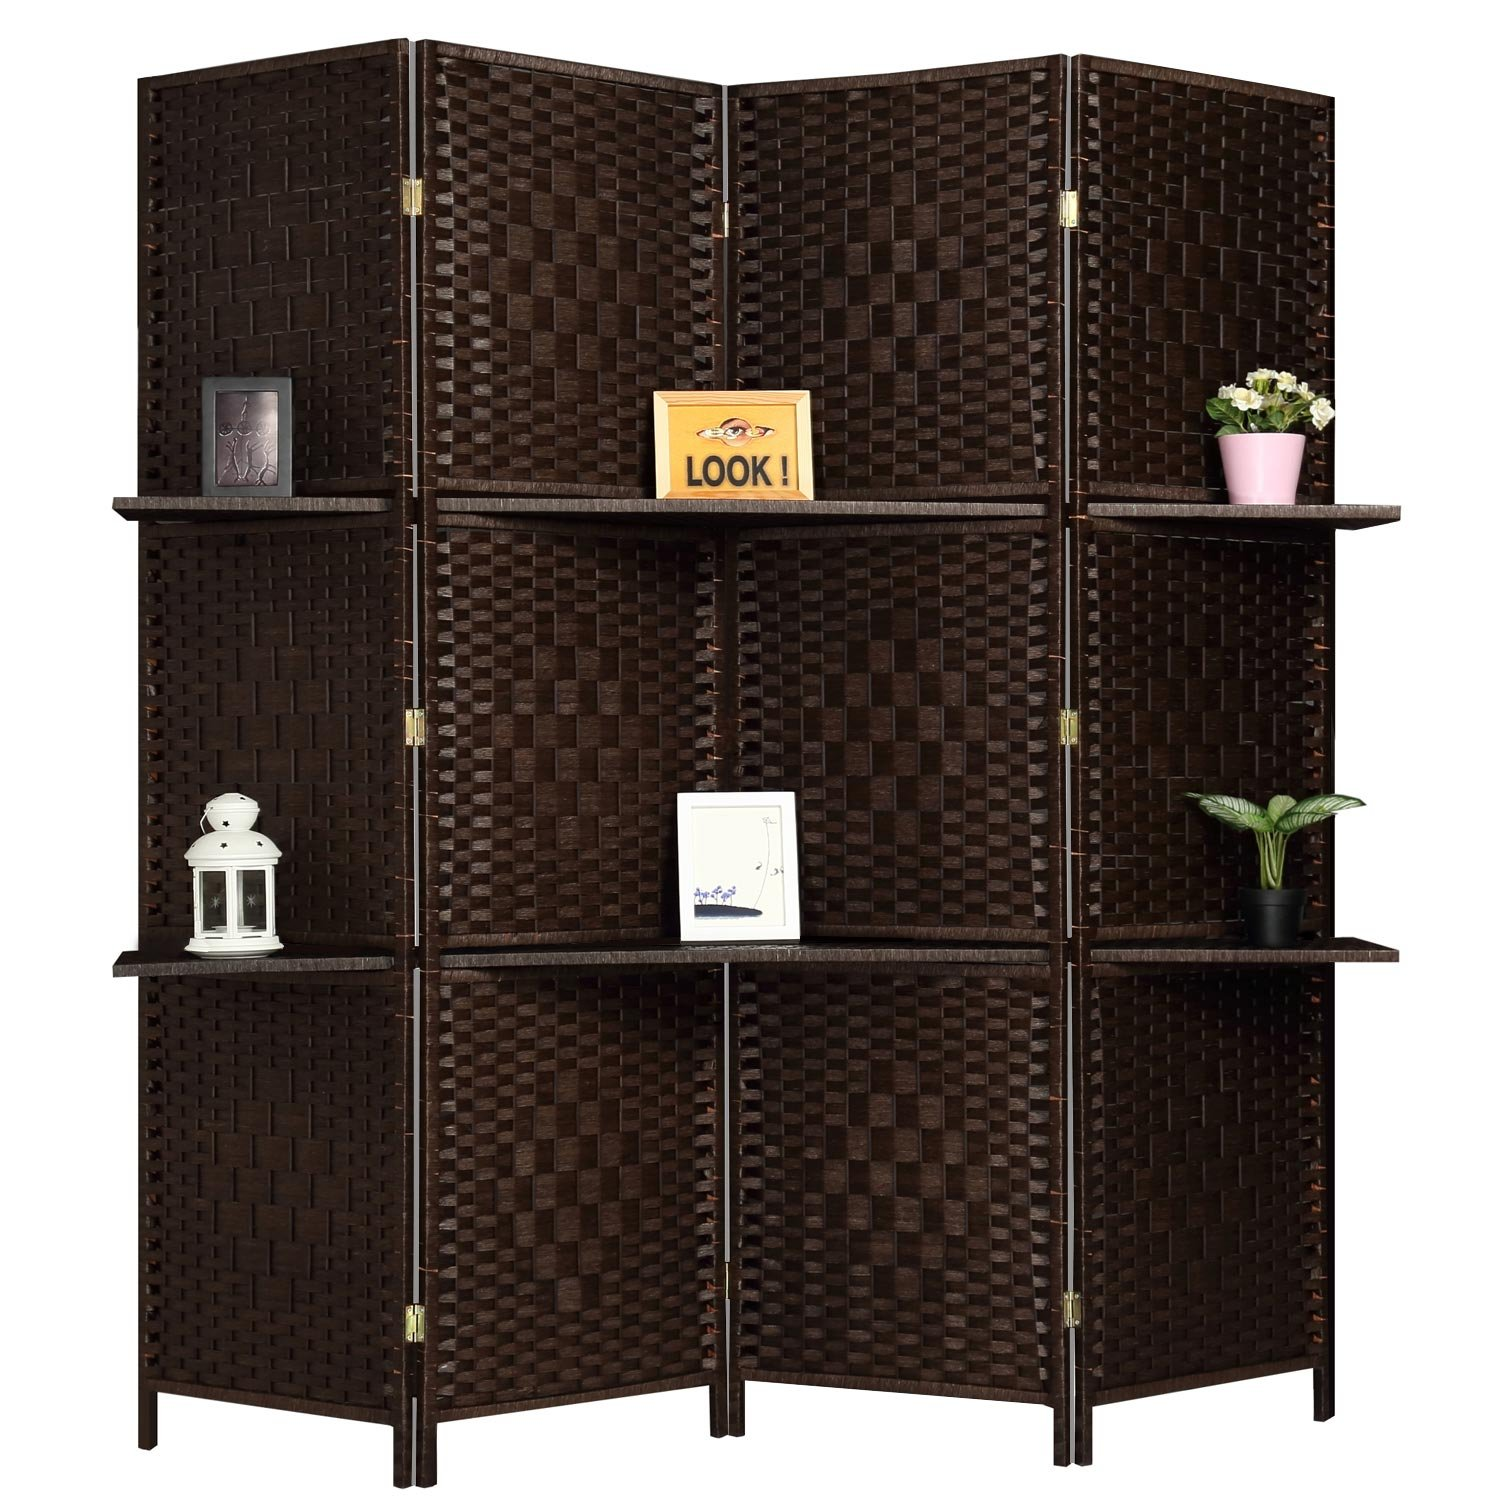 RHF 6 ft Tall (Extra Wide) Diamond Room Divider,Wall divider,Room dividers and folding privacy screens,Partition Wall, With 2 Display Shelves&room divider with shelves-DarkMocha-4 Panels 2 Shelves by Rose Home Fashion